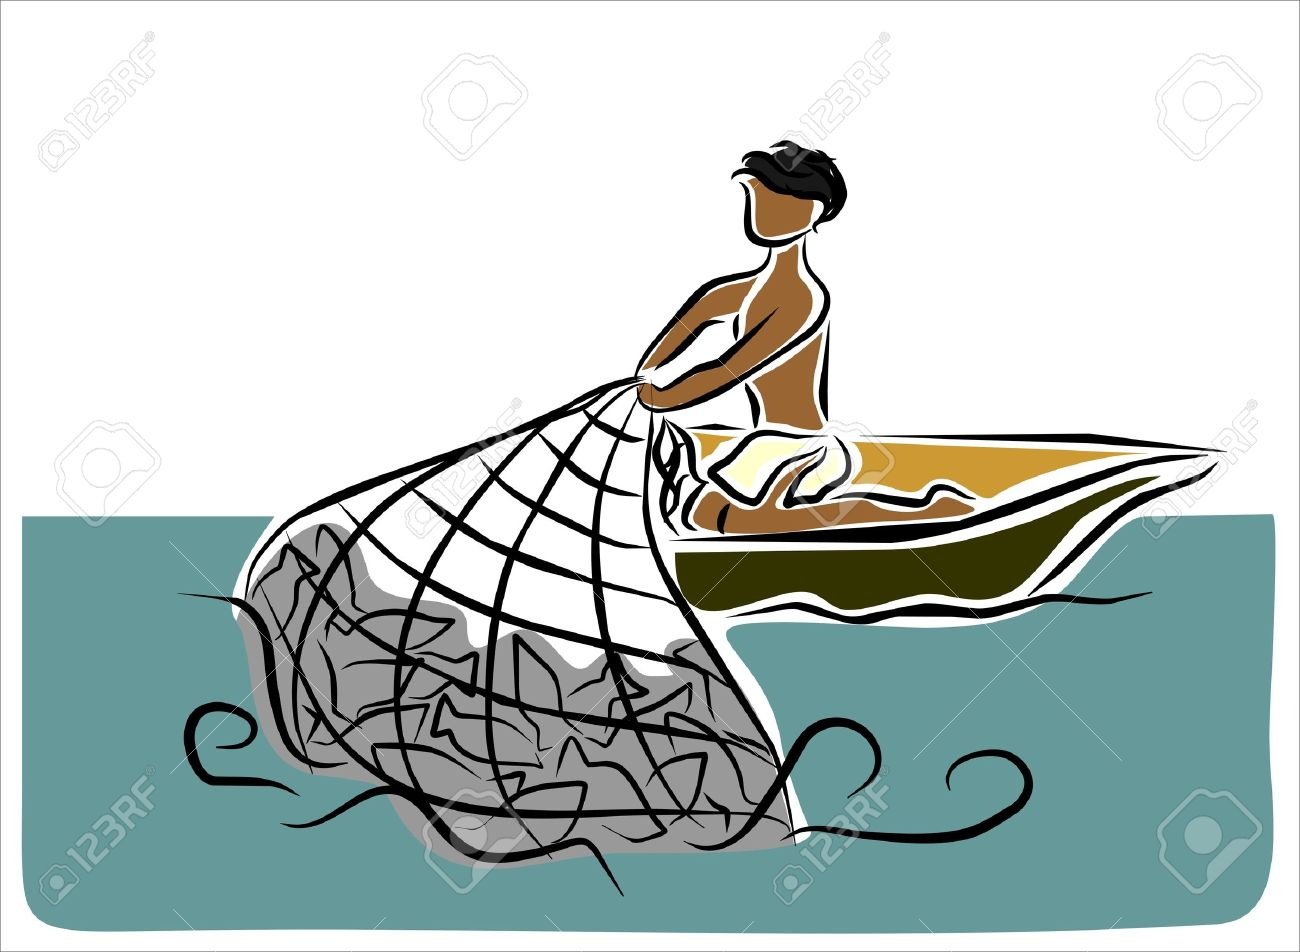 1300x952 Fishing Clipart Illustration Free Collection Download And Share